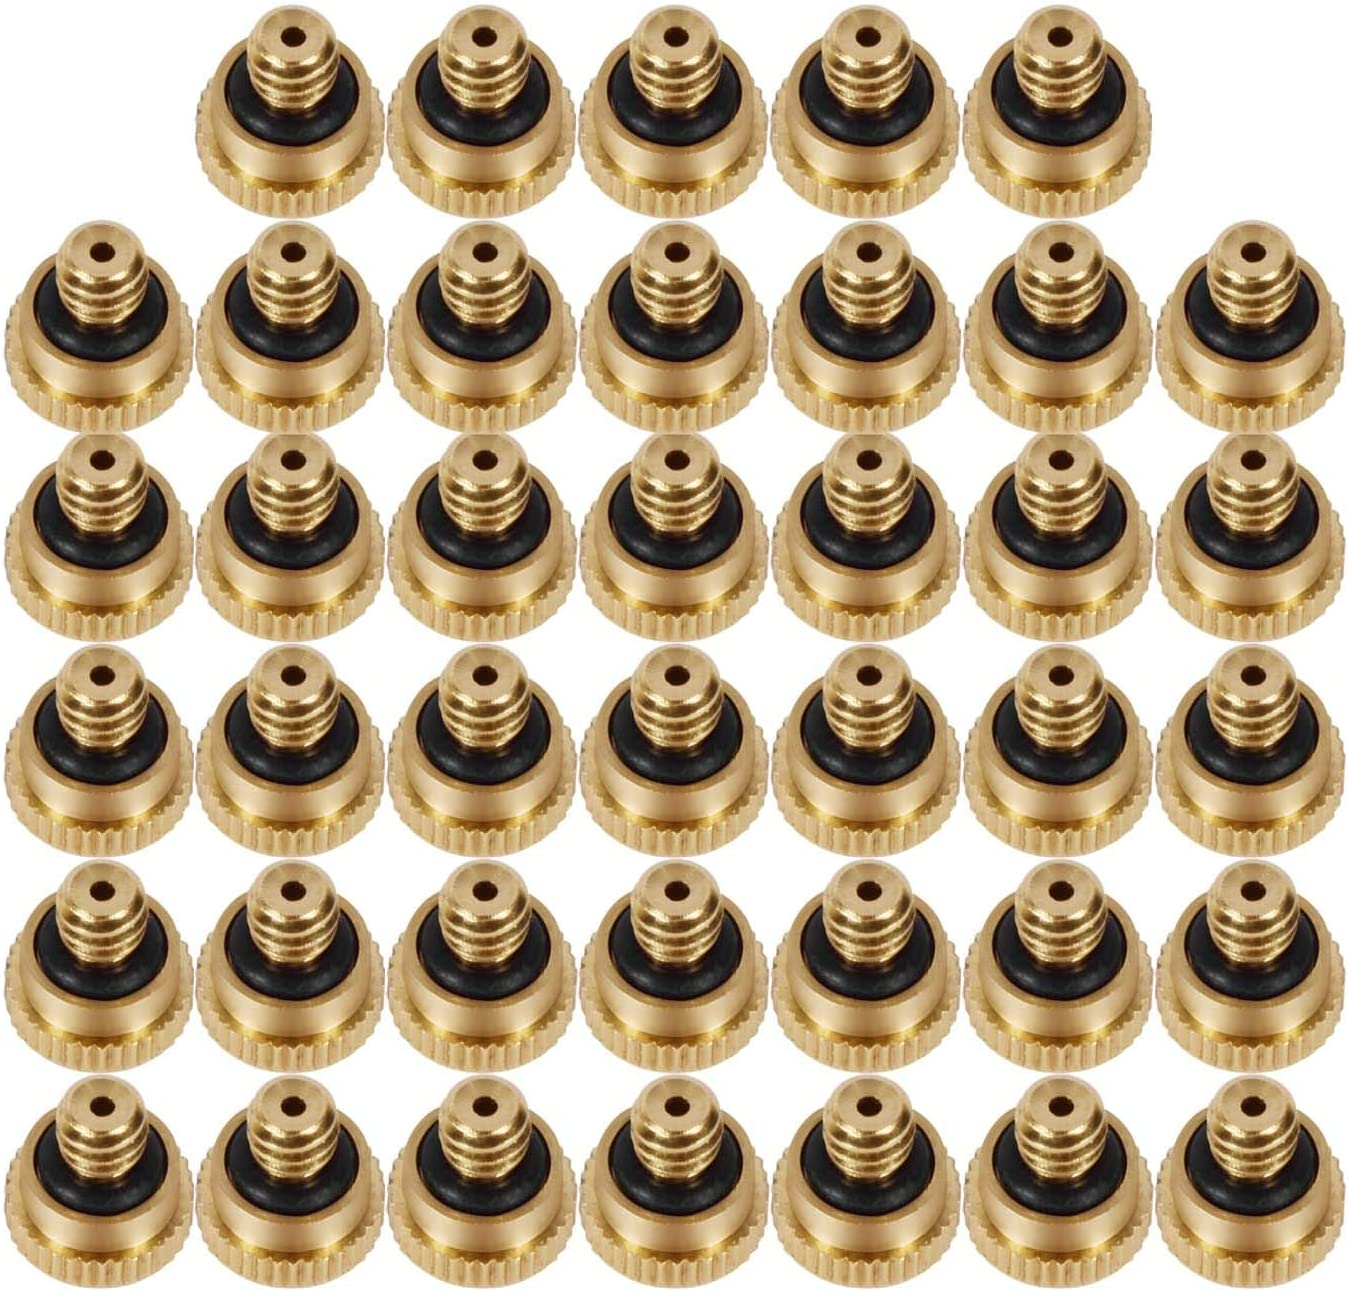 "KUWAN 0.016"" Orifice (0.4mm) Thread UNC 10/24 Brass Misting Nozzles Low Pressure Atomizing Misting Sprayer Water Hose Nozzle for Greenhouse, Landscaping, Outdoor Cooling Mister System (40PCS)"